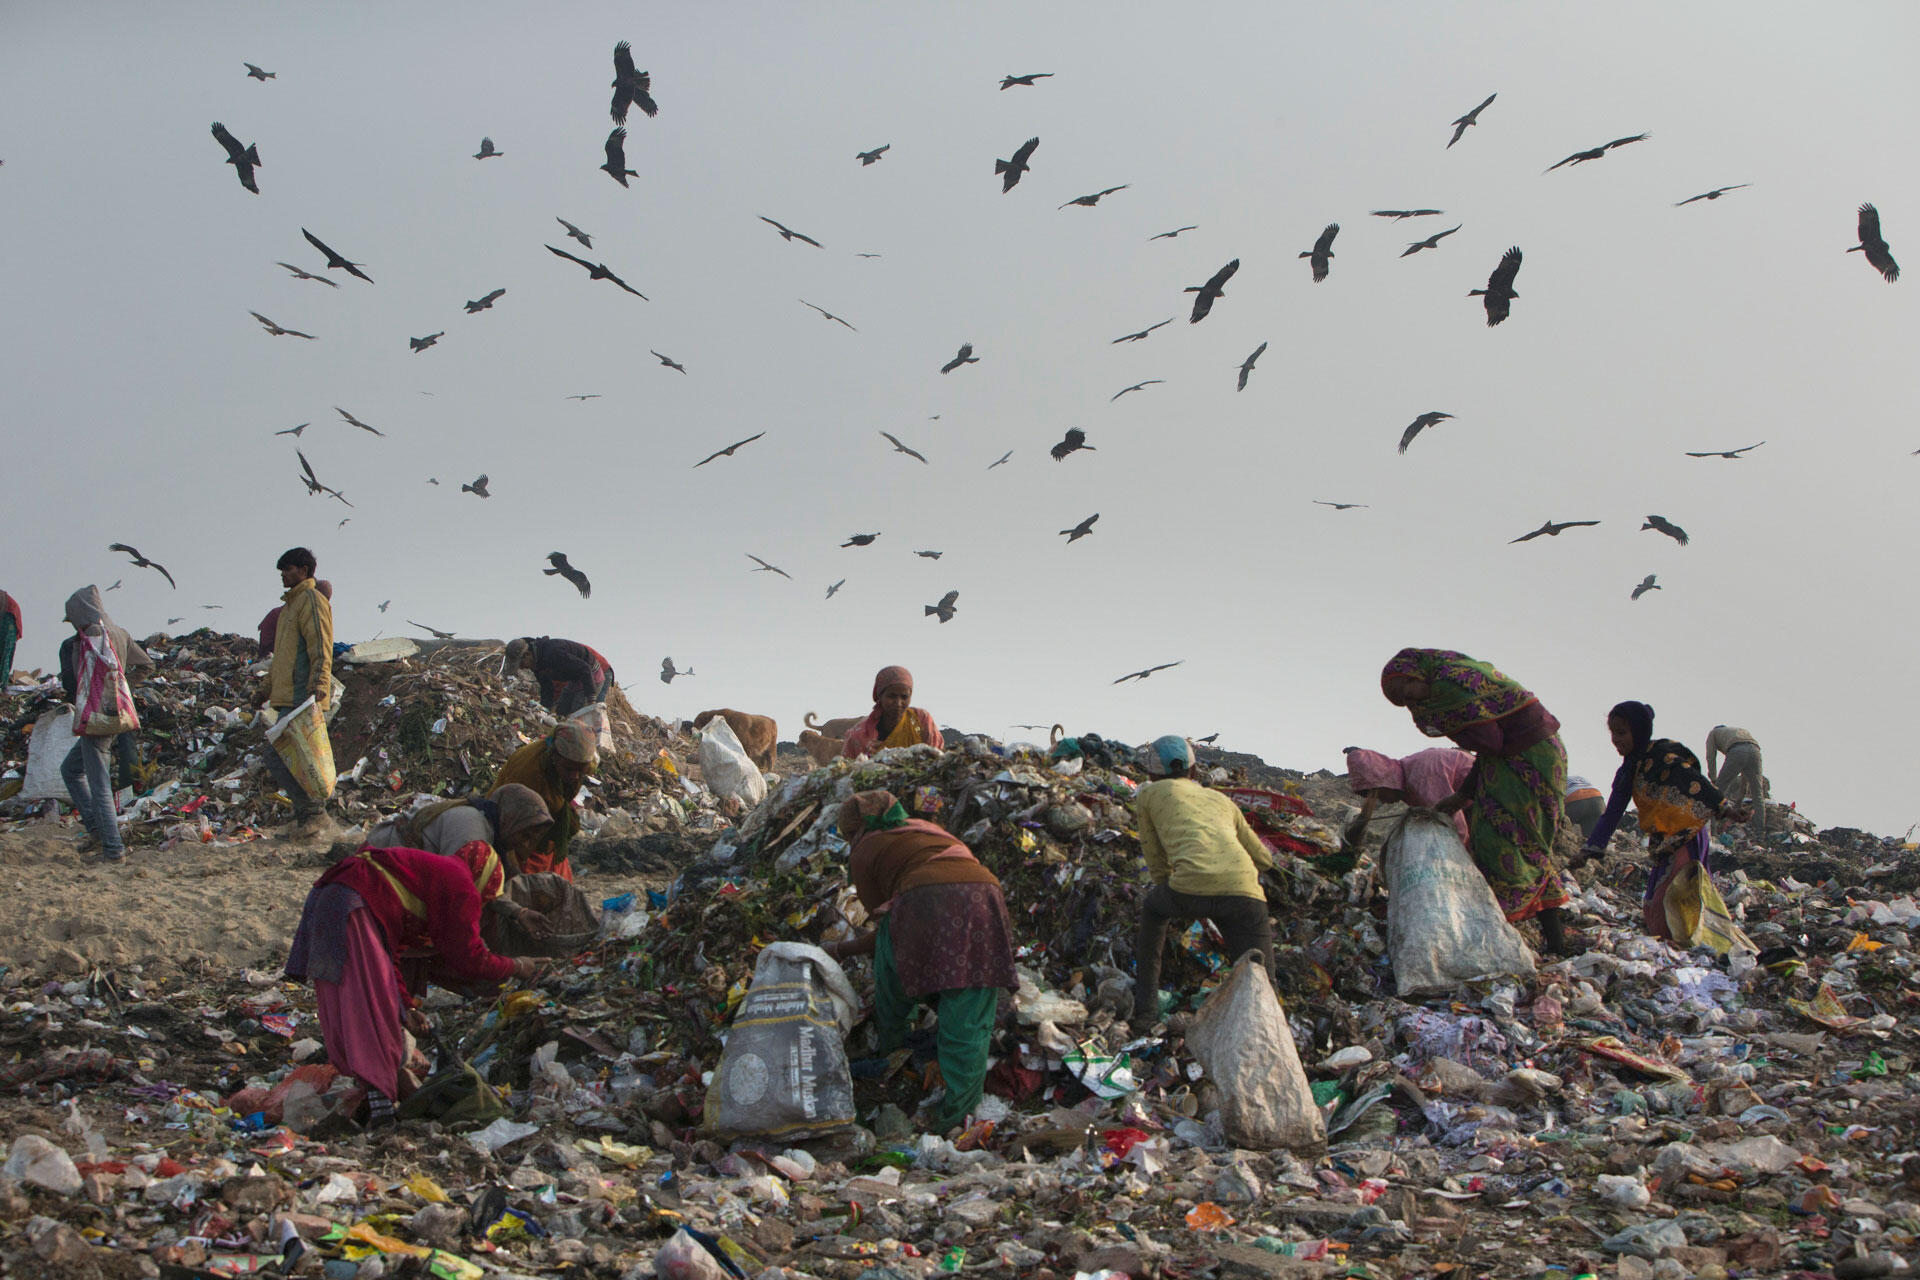 Black Kites circle over Ghazipur dump, waiting to swoop down and grab morsels uncovered by garbage pickers. Luke Massey